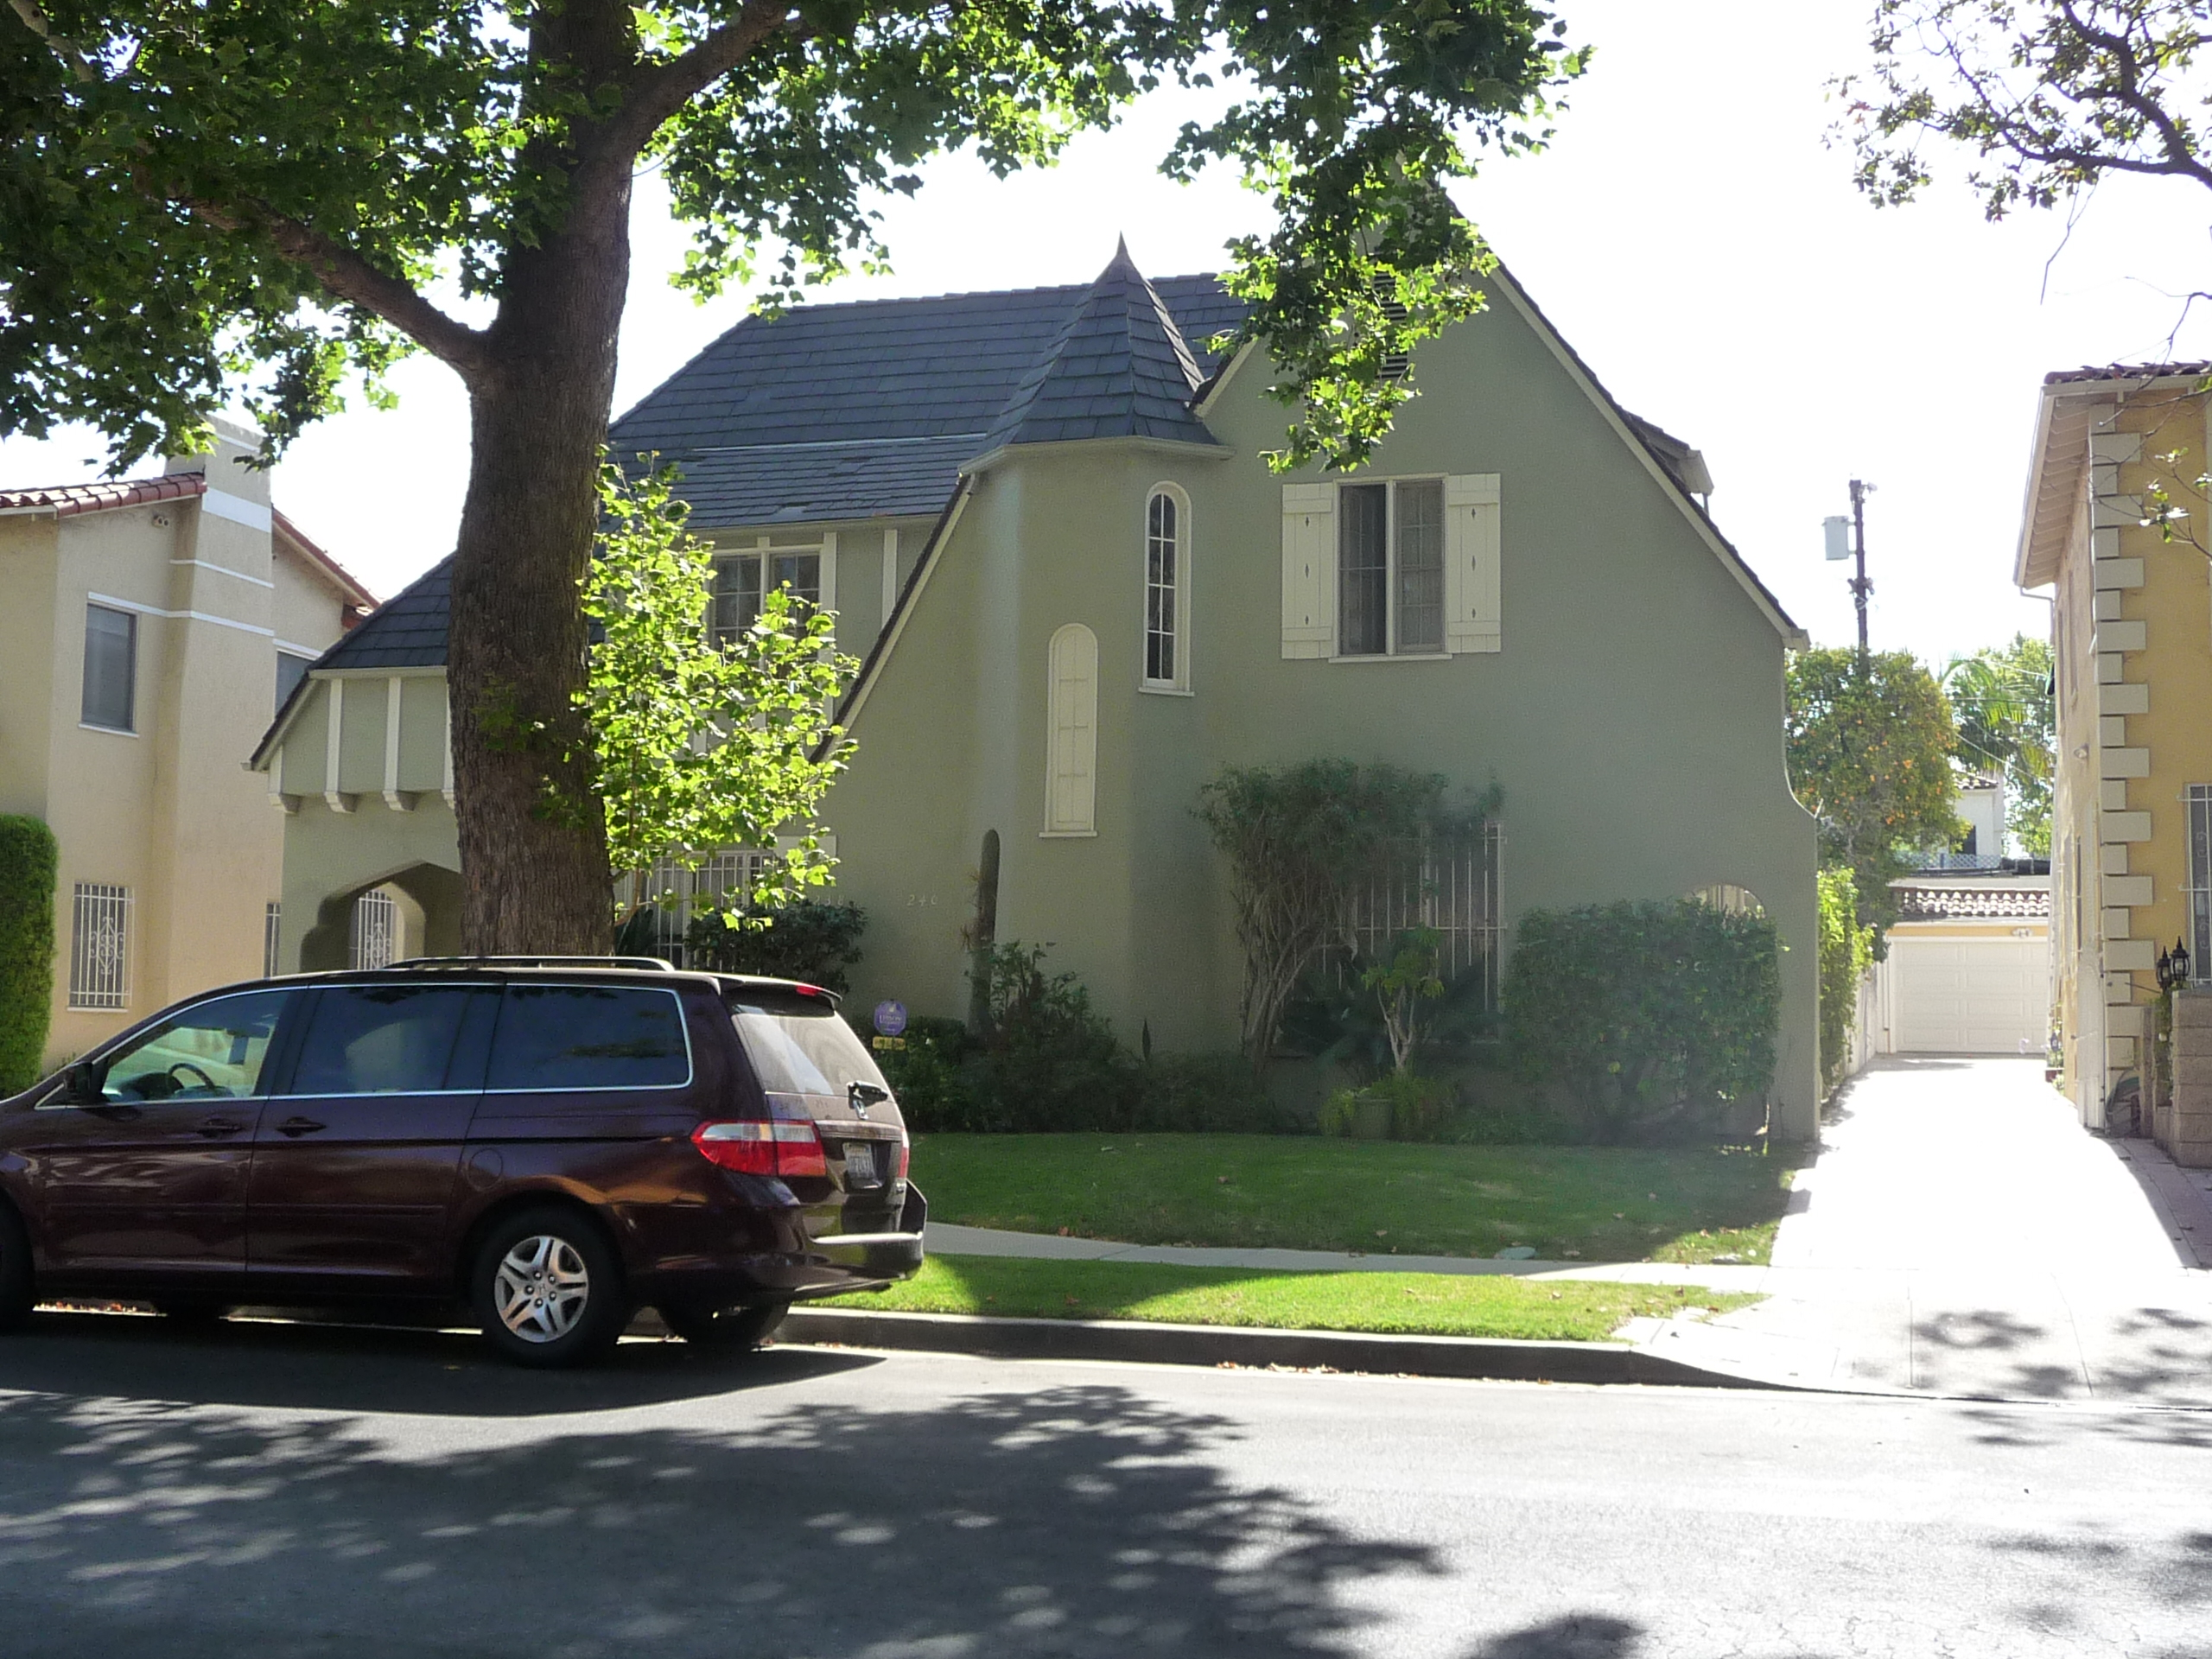 238 S MANSFIELD AVE - PHOTO